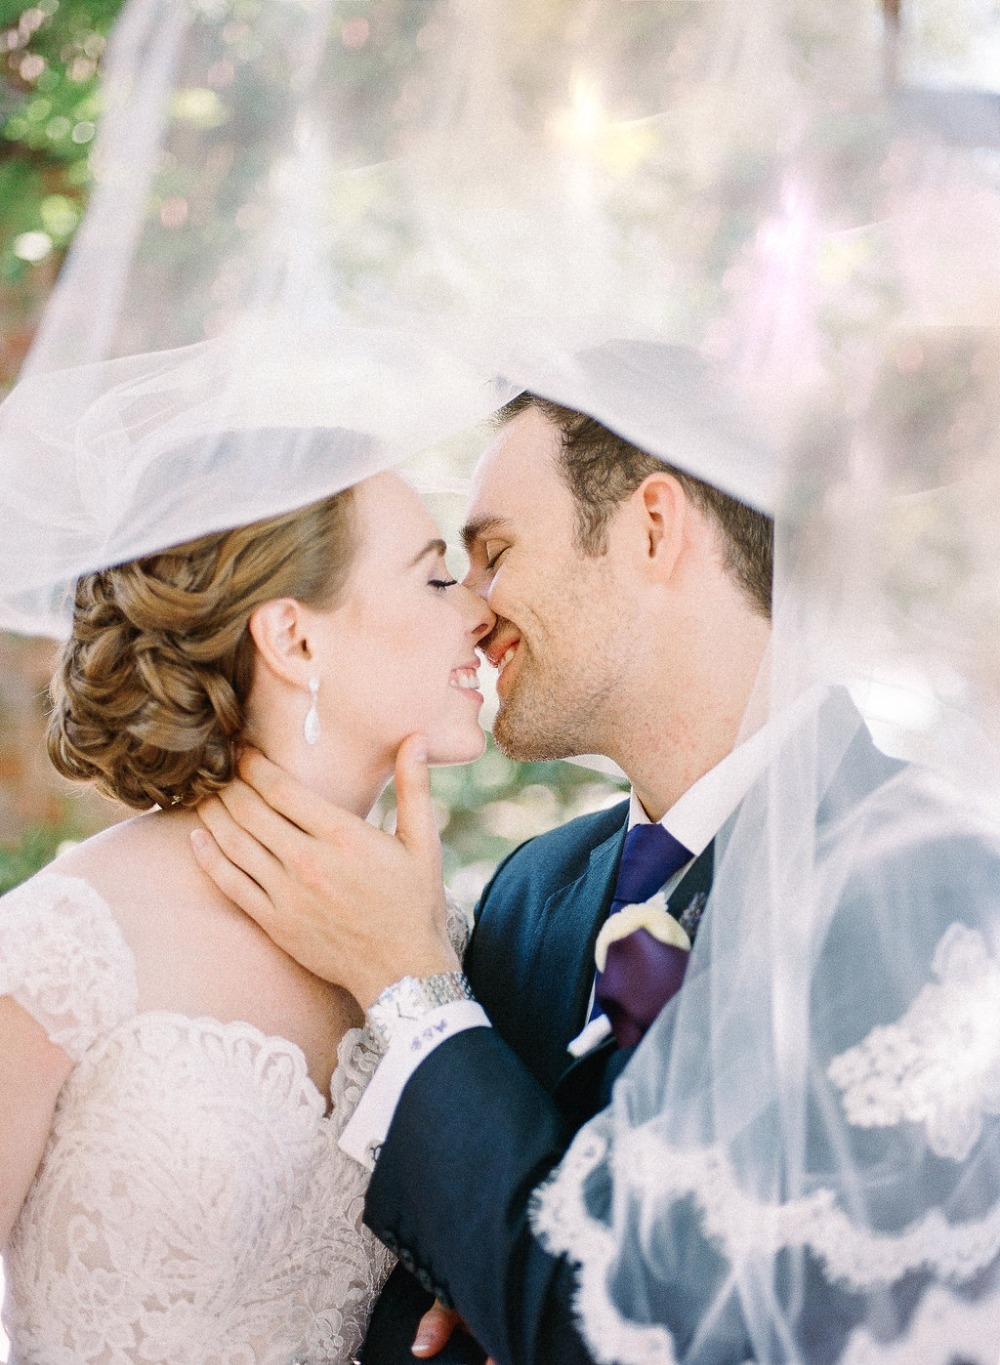 Romantic veil wedding photo